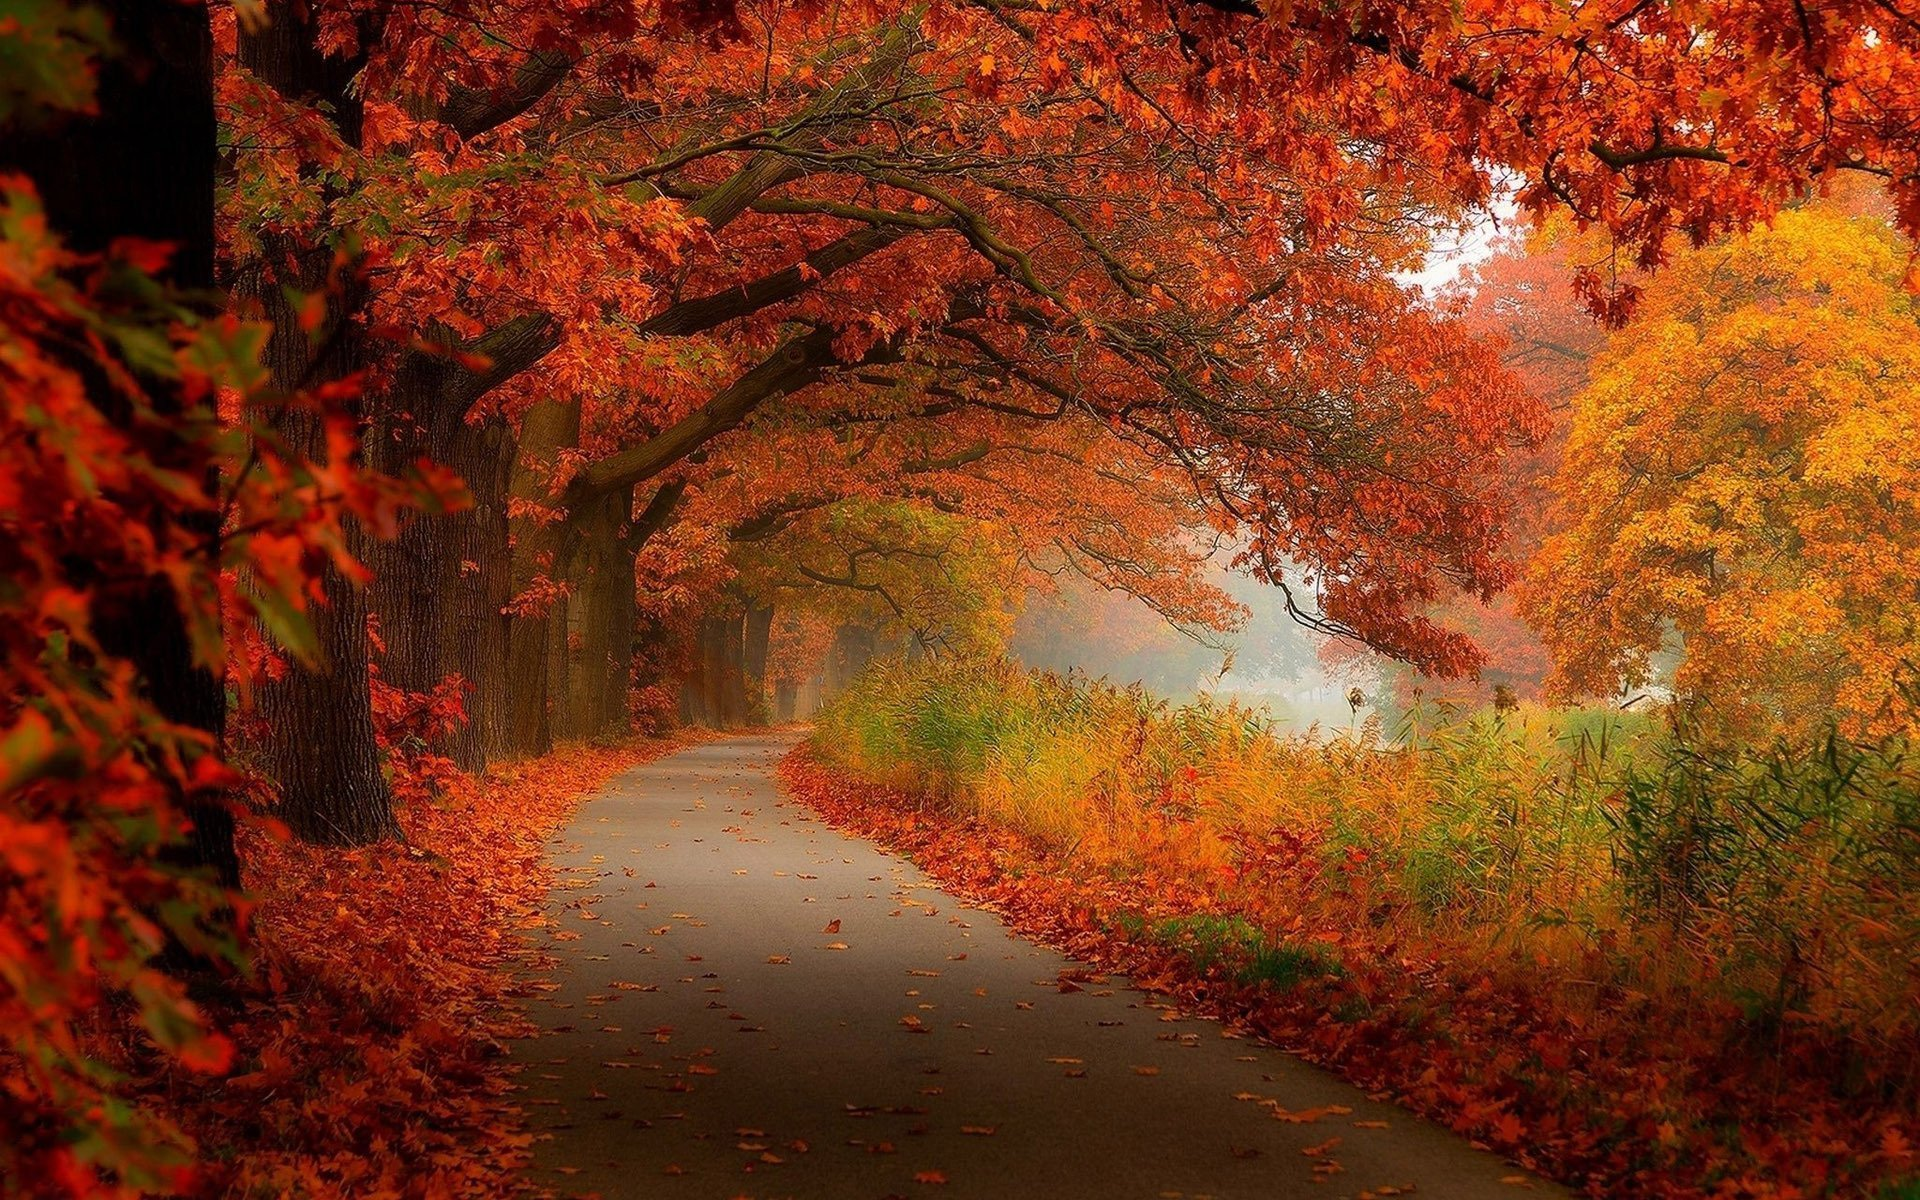 Free Download Download Fall Foliage Wallpapers 1920x1200 For Your Desktop Mobile Tablet Explore 77 Free Fall Foliage Wallpaper Free Halloween Wallpaper Free Thanksgiving Wallpaper Free Fall Wallpaper And Screensavers